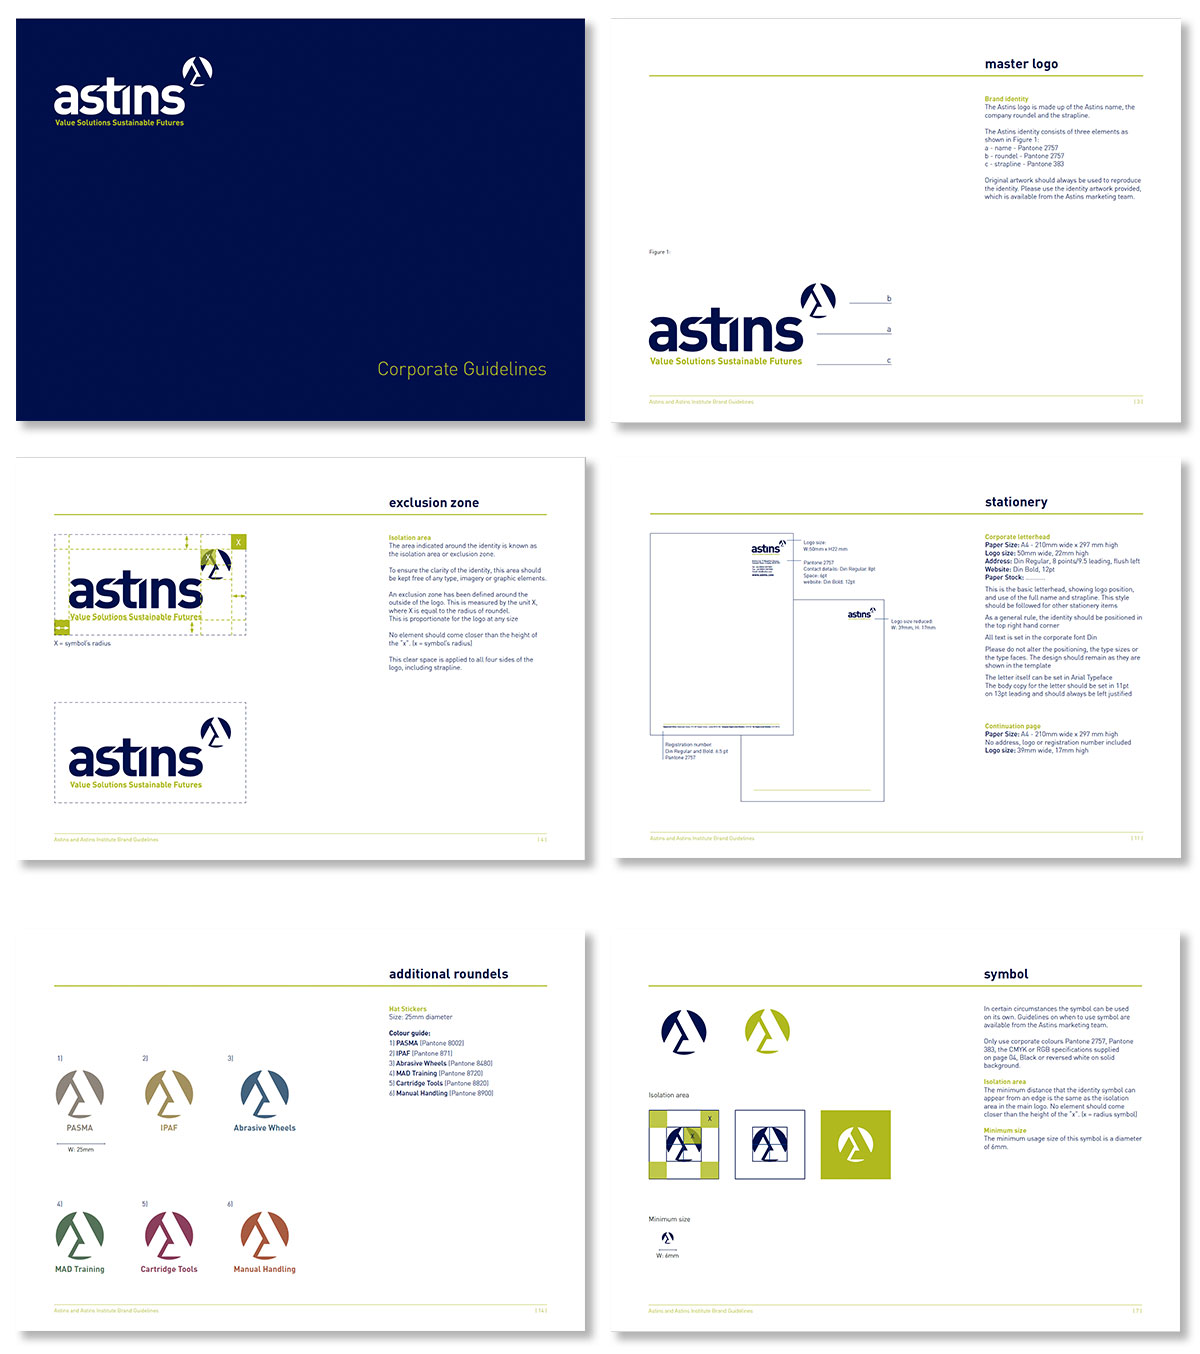 Astins-guides